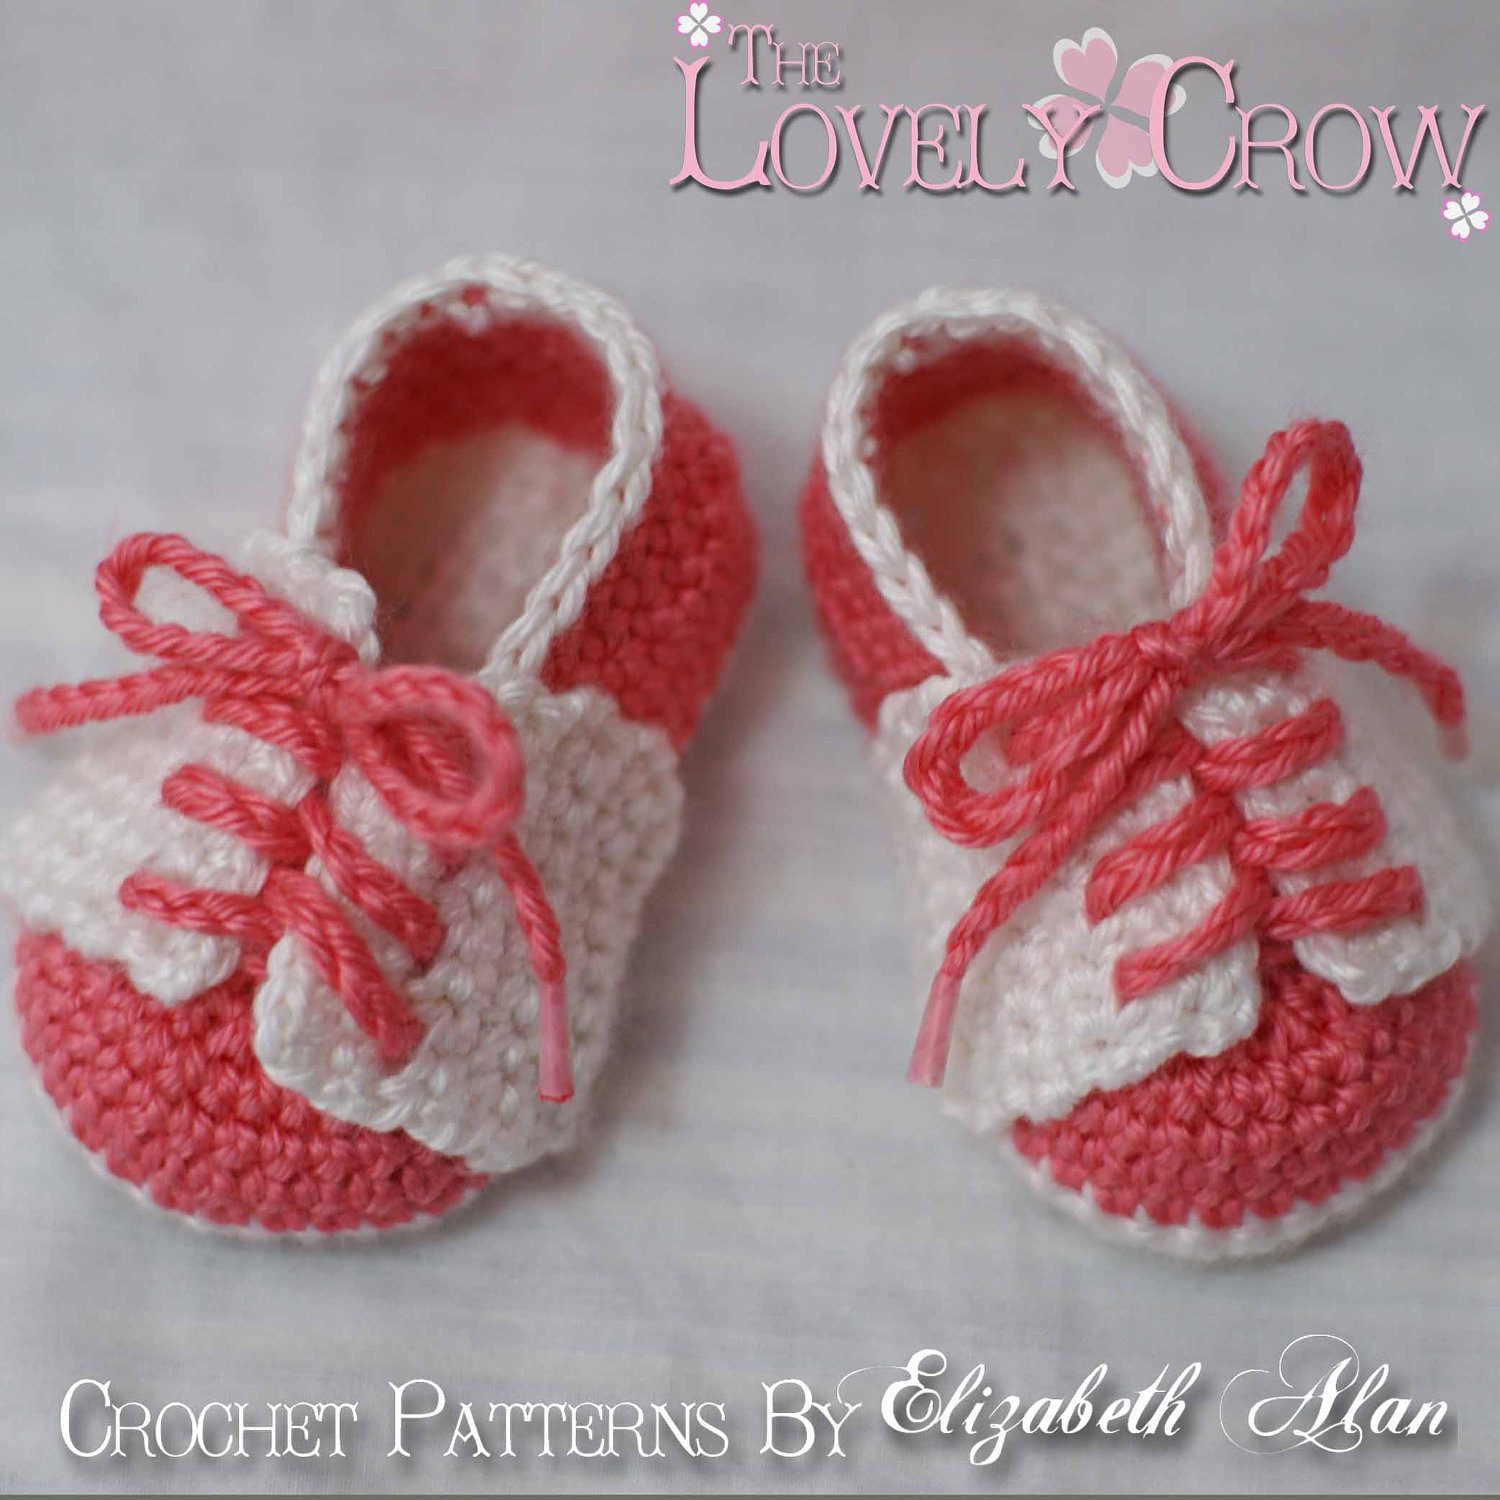 Unique Baby Slippers Crochet Pattern for Little Sport Saddles Digital Crochet Baby Shoes Pattern Of Delightful 50 Pictures Crochet Baby Shoes Pattern